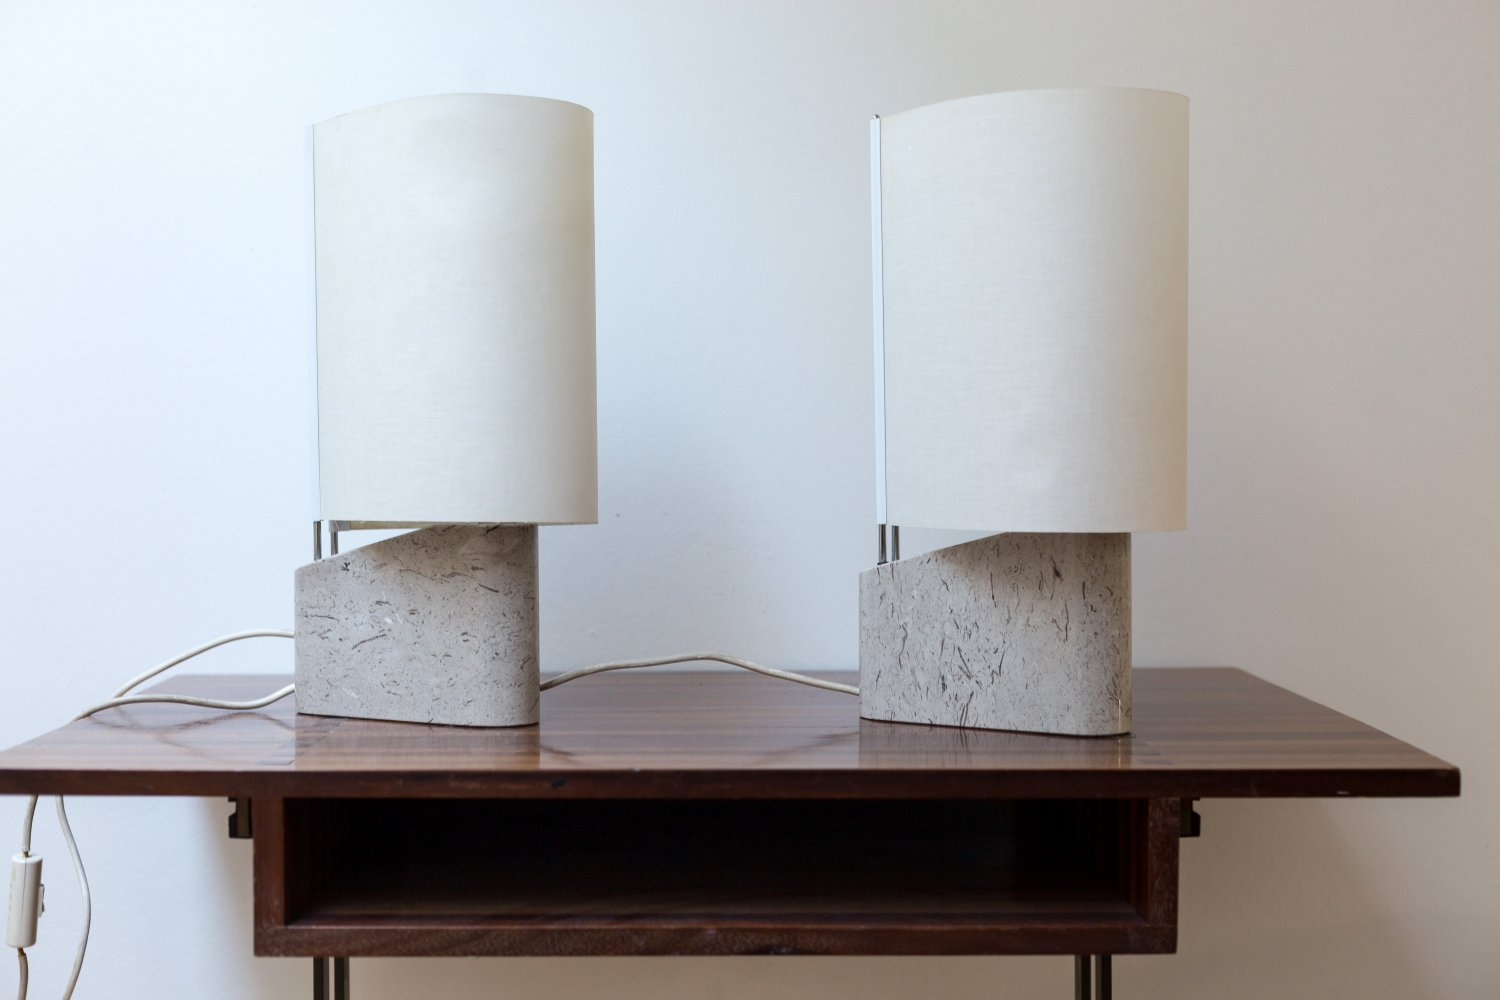 Pair of 'Ibis' lamps by Bruno Gecchelin for Skipper